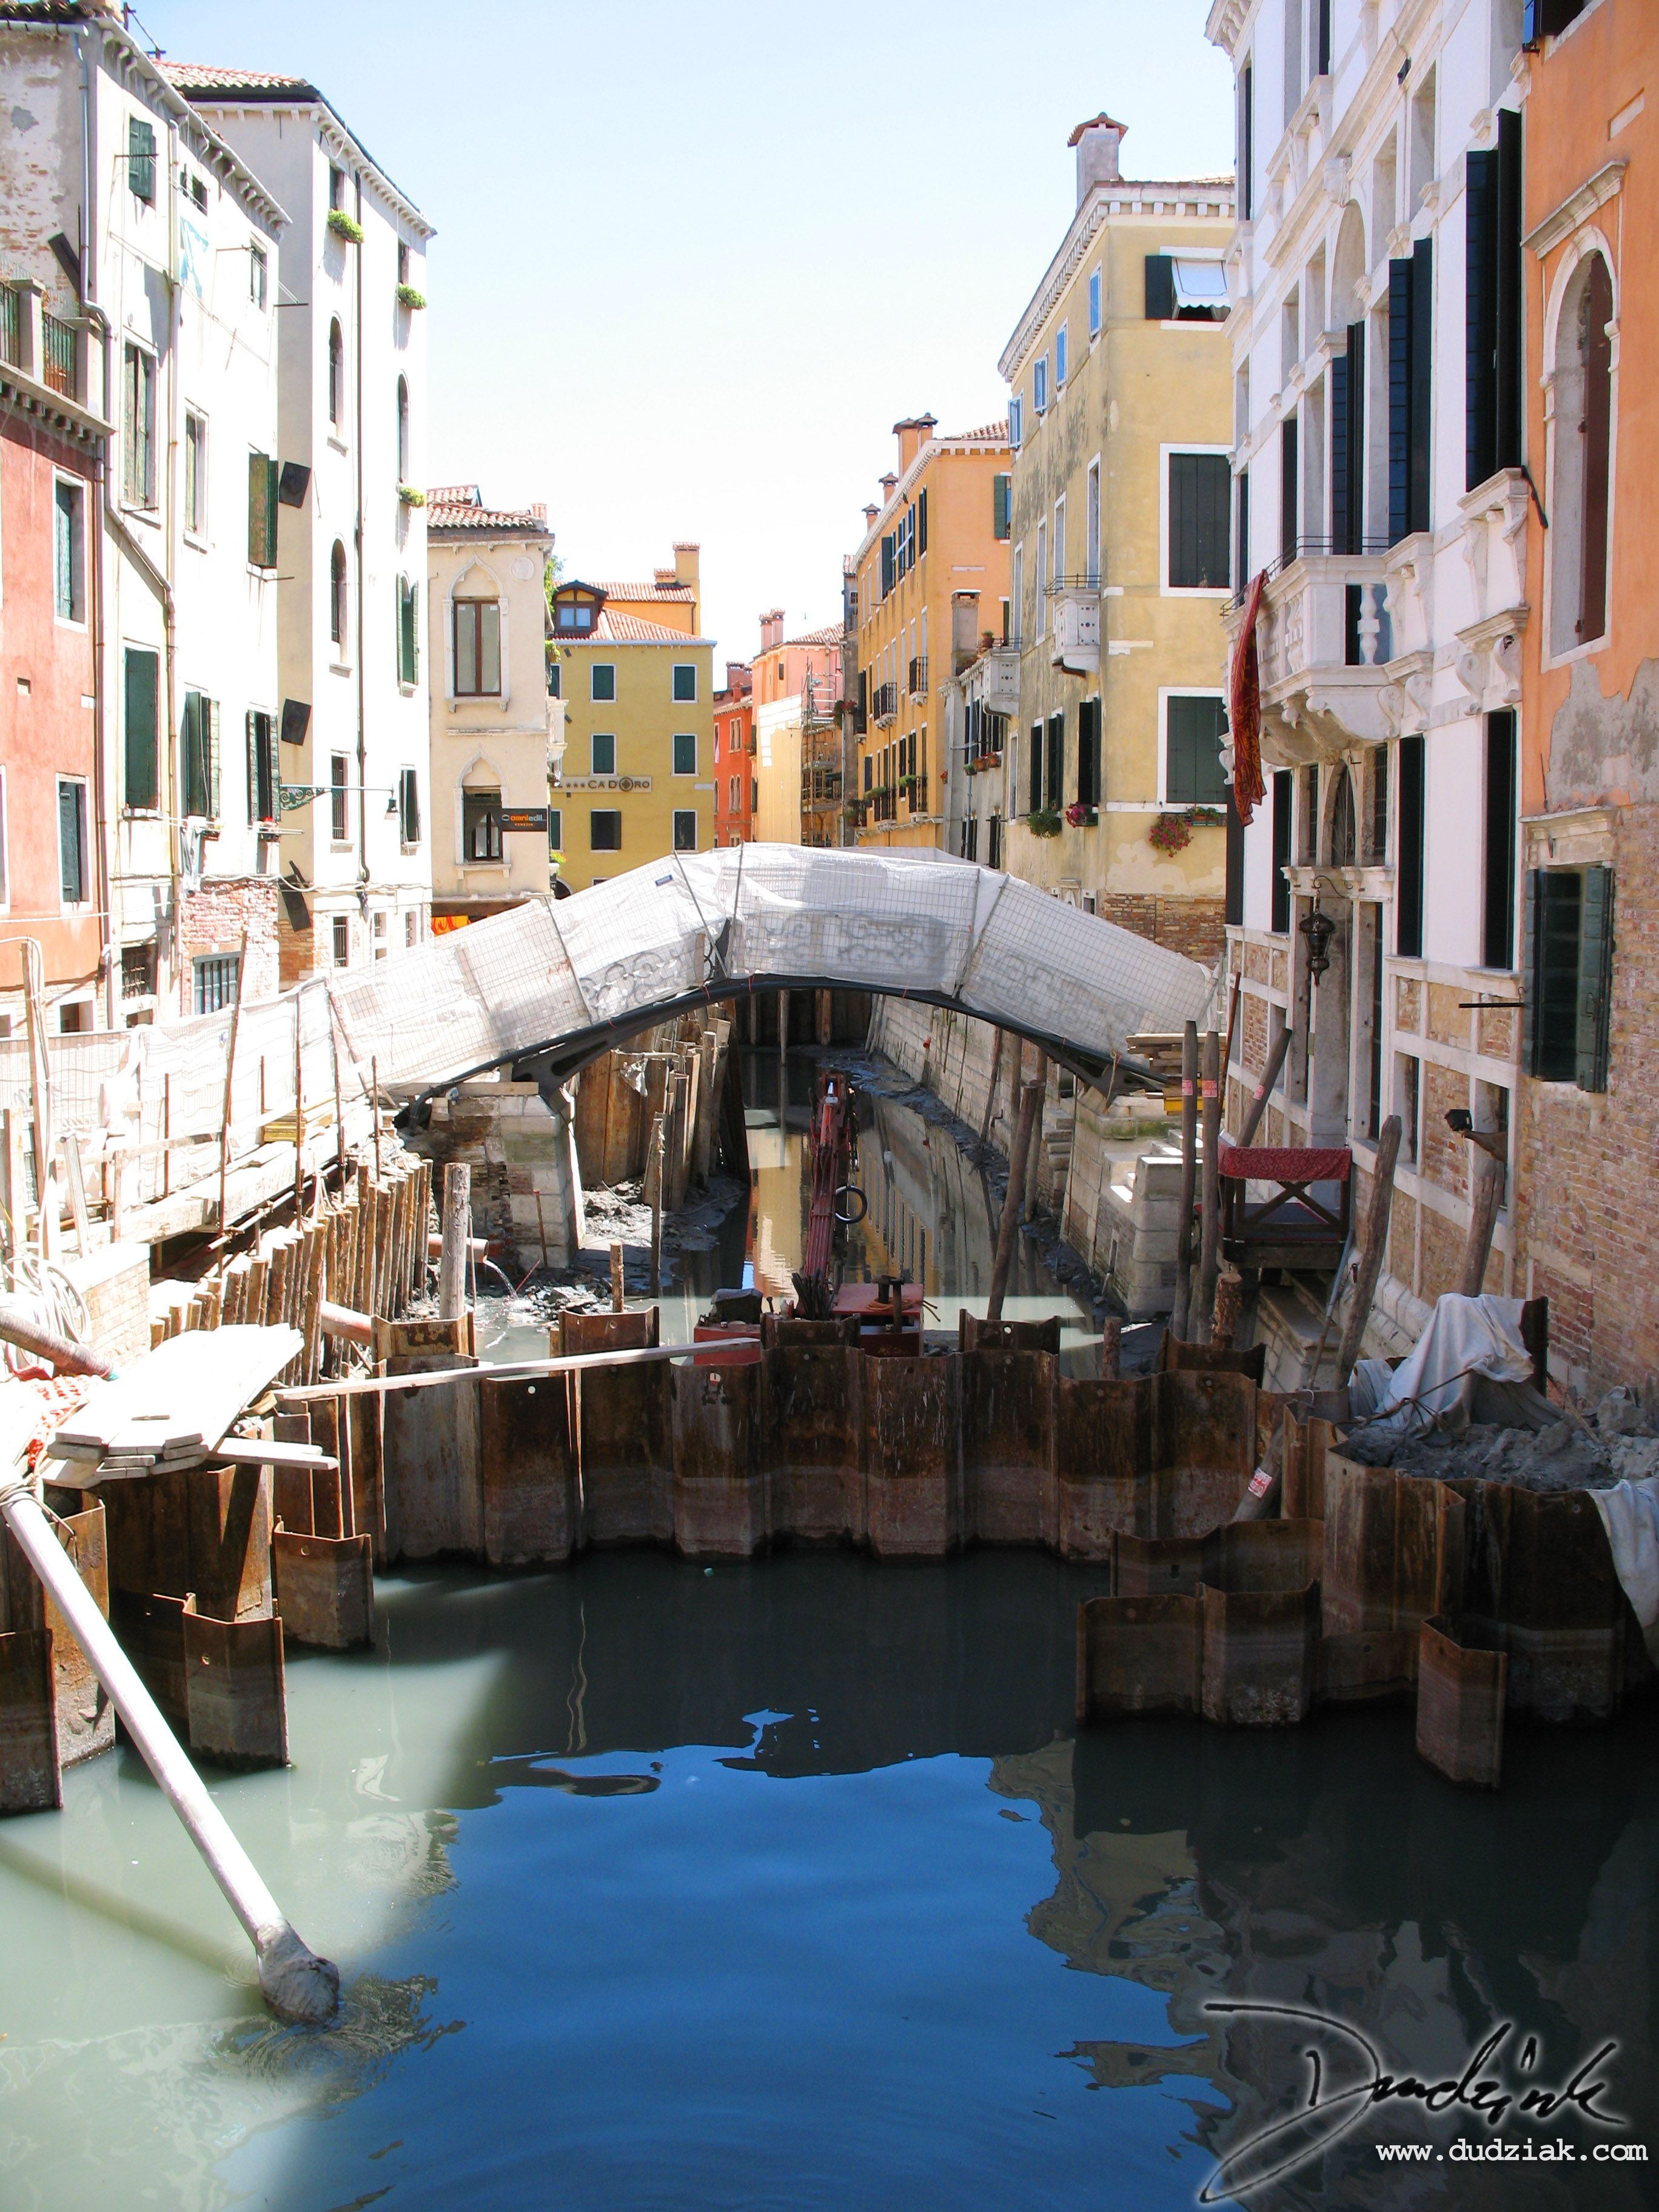 venice,  canal repair,  italy,  canal